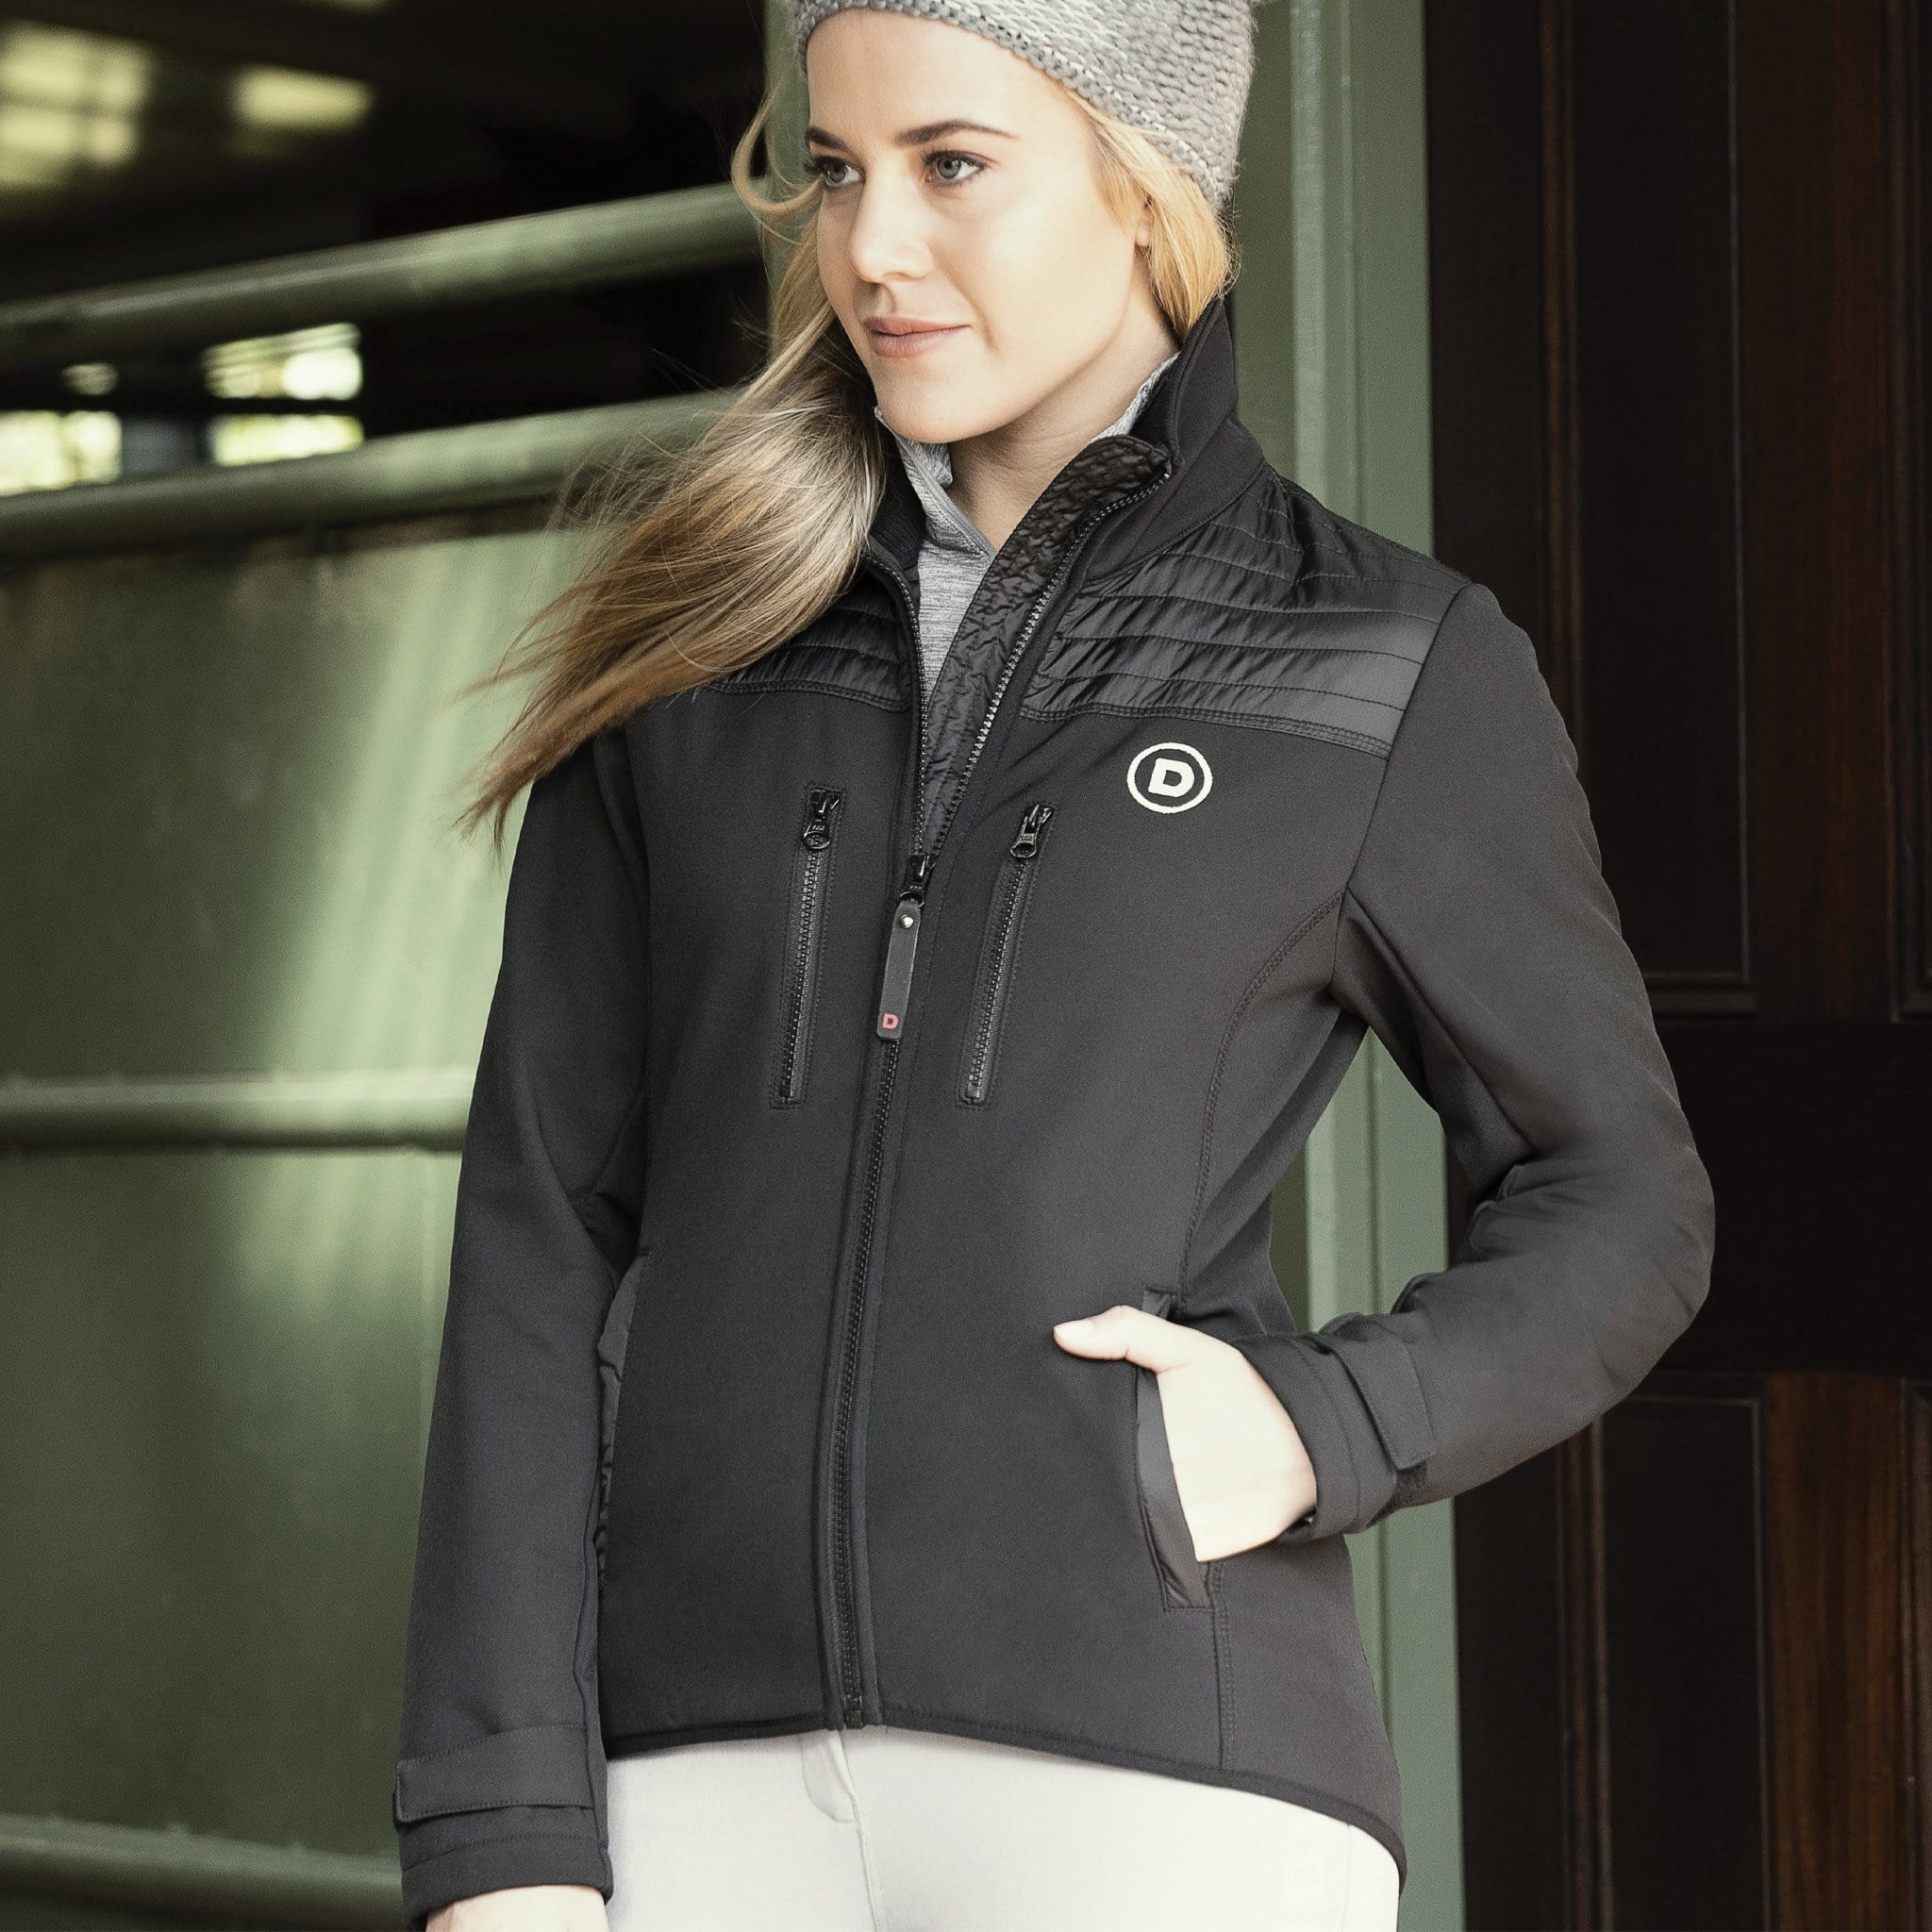 Dublin Zoe Soft Shell Jacket Front Black On Model Close Up 1000501001.